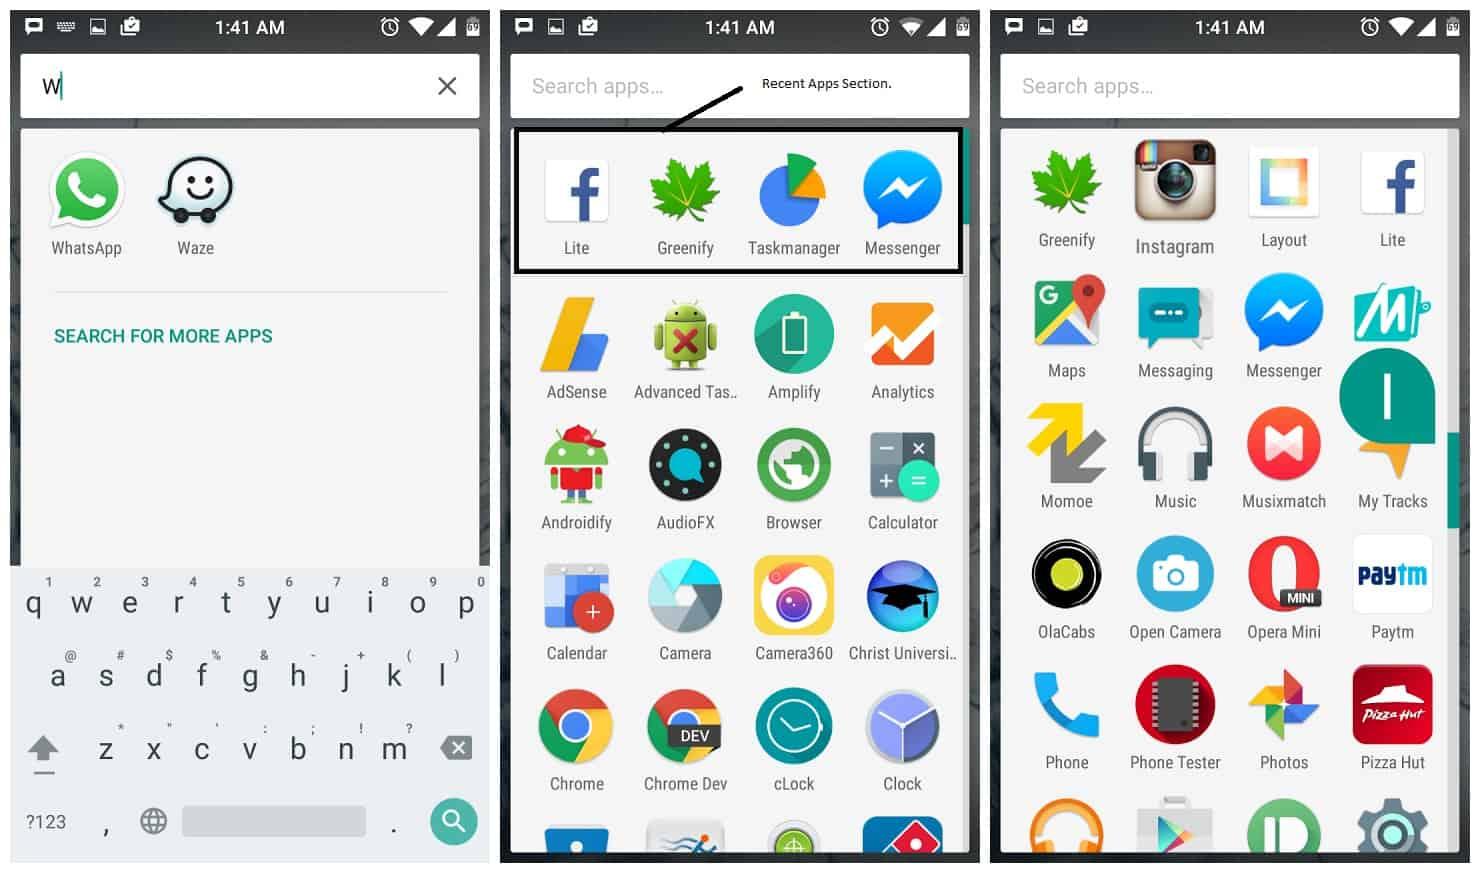 Google Launcher Latest Update Brings Quick Search, Recent Apps, Vertical Scrolling and Scrolling Alphabetically.